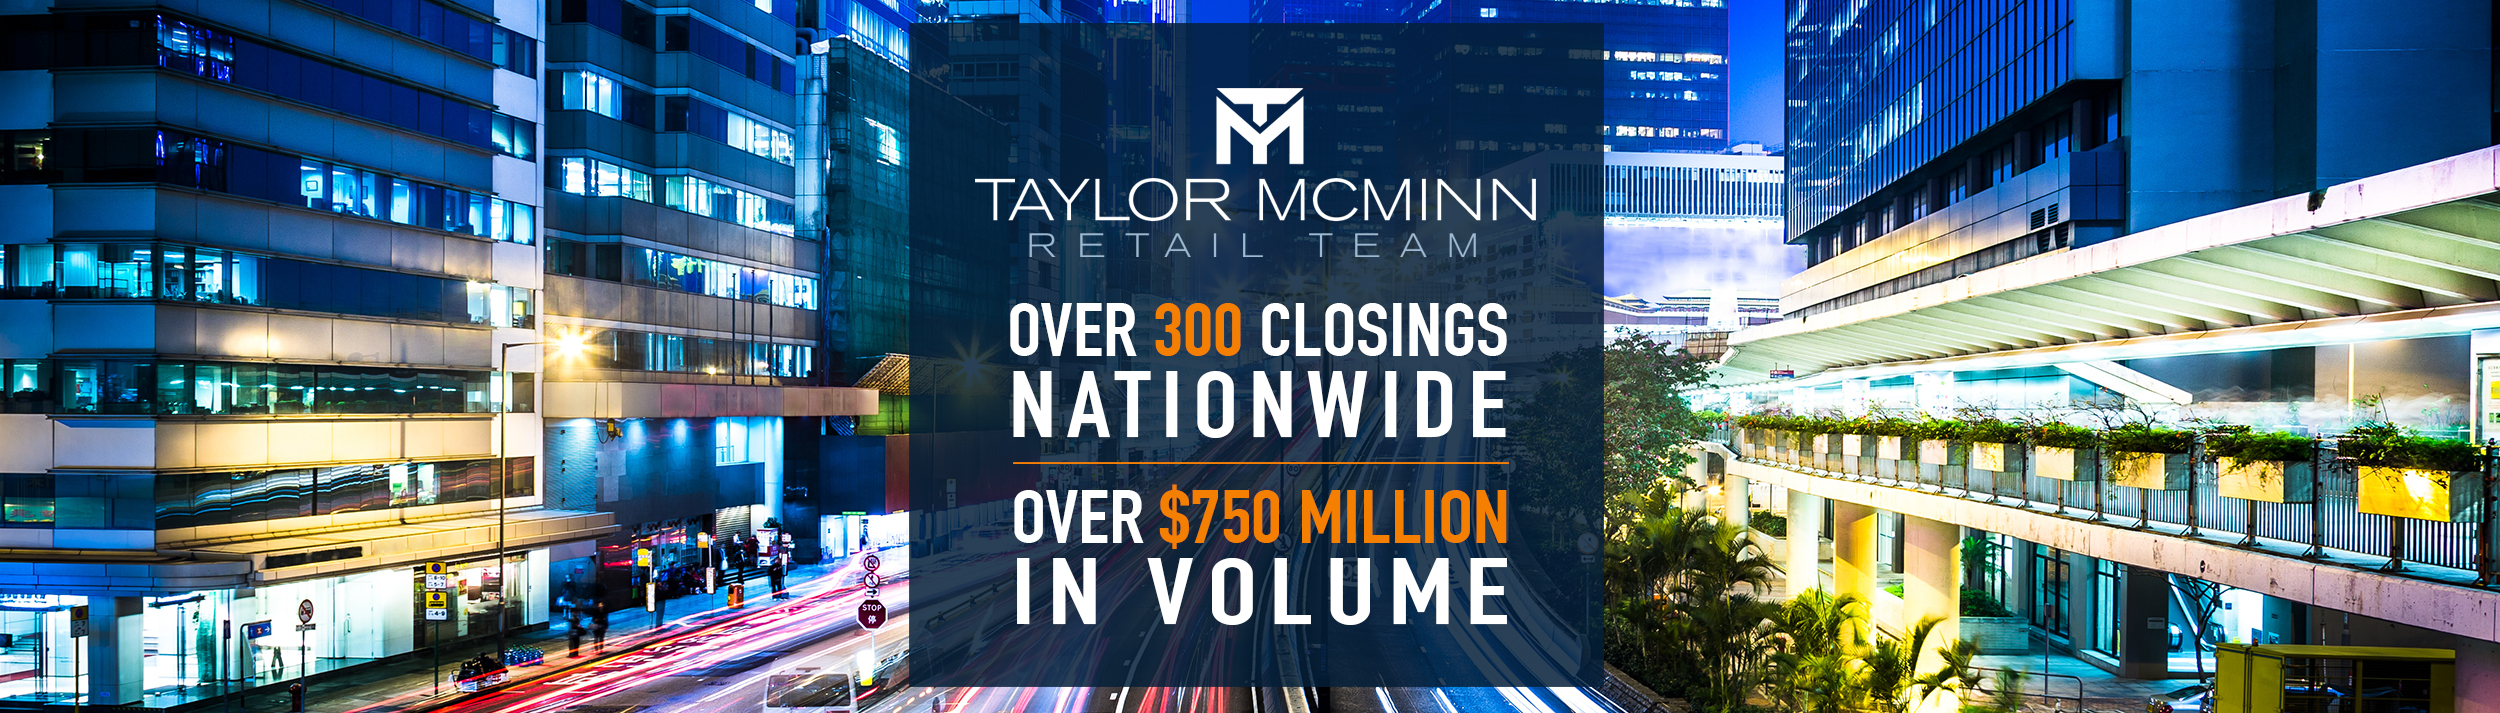 taylor mcminn retail group track record